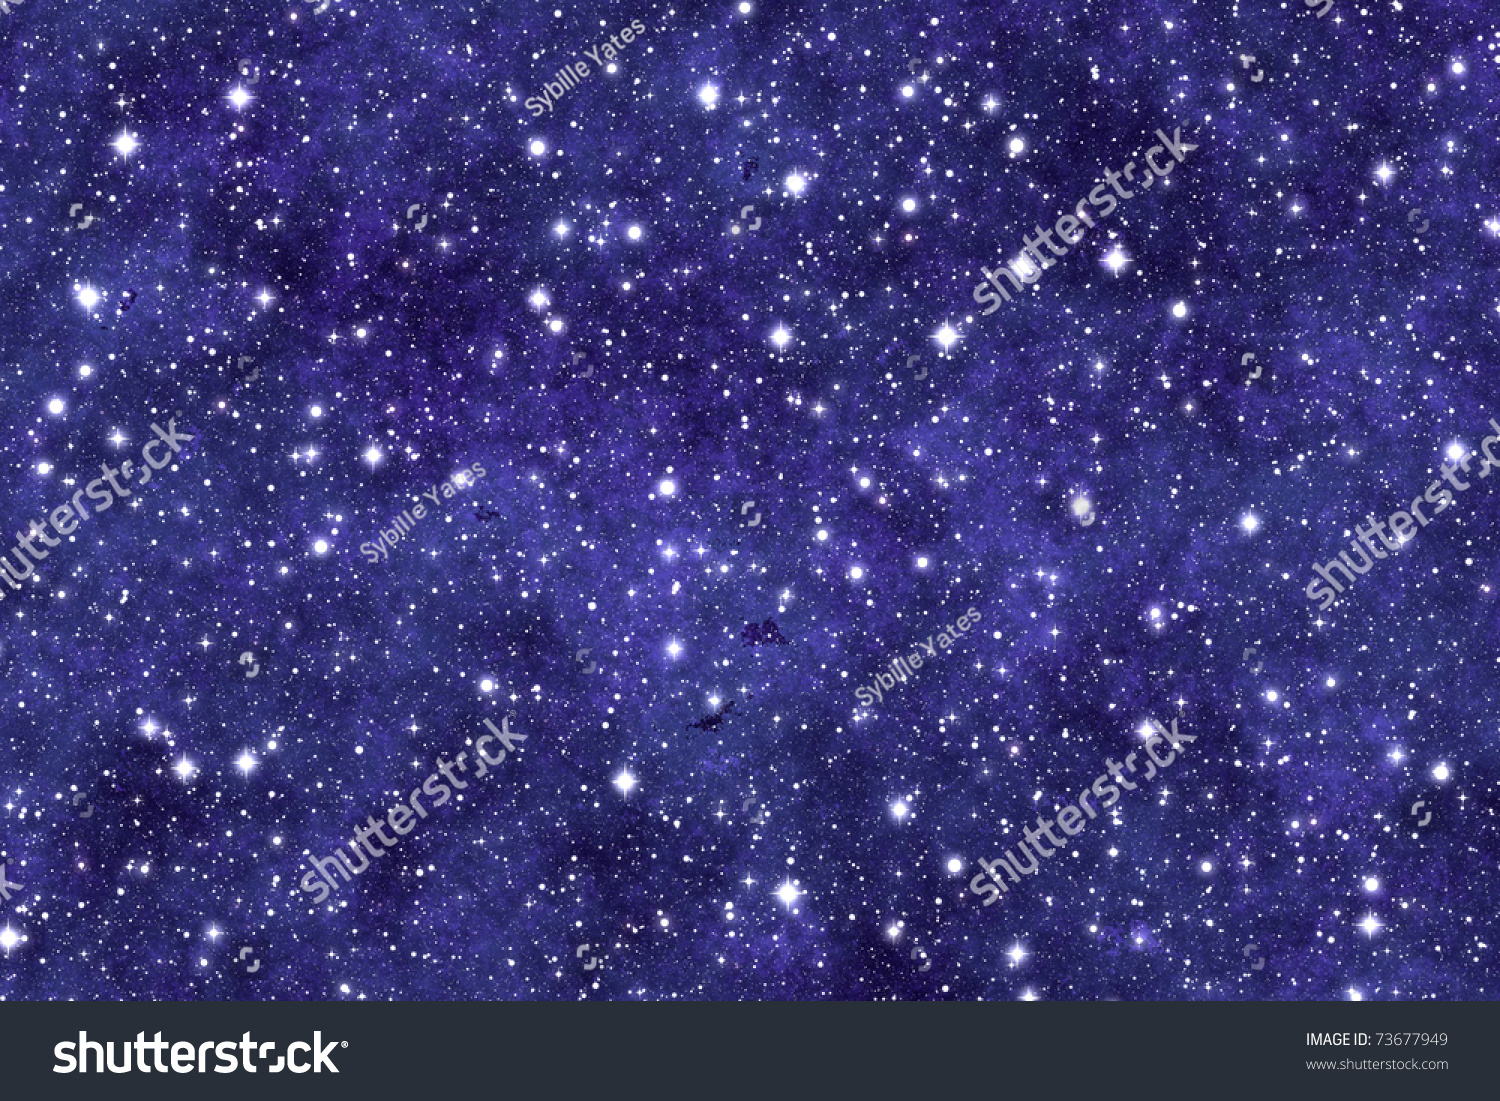 Night Sky Wallpaper With Many Stars And Dreamy Effect